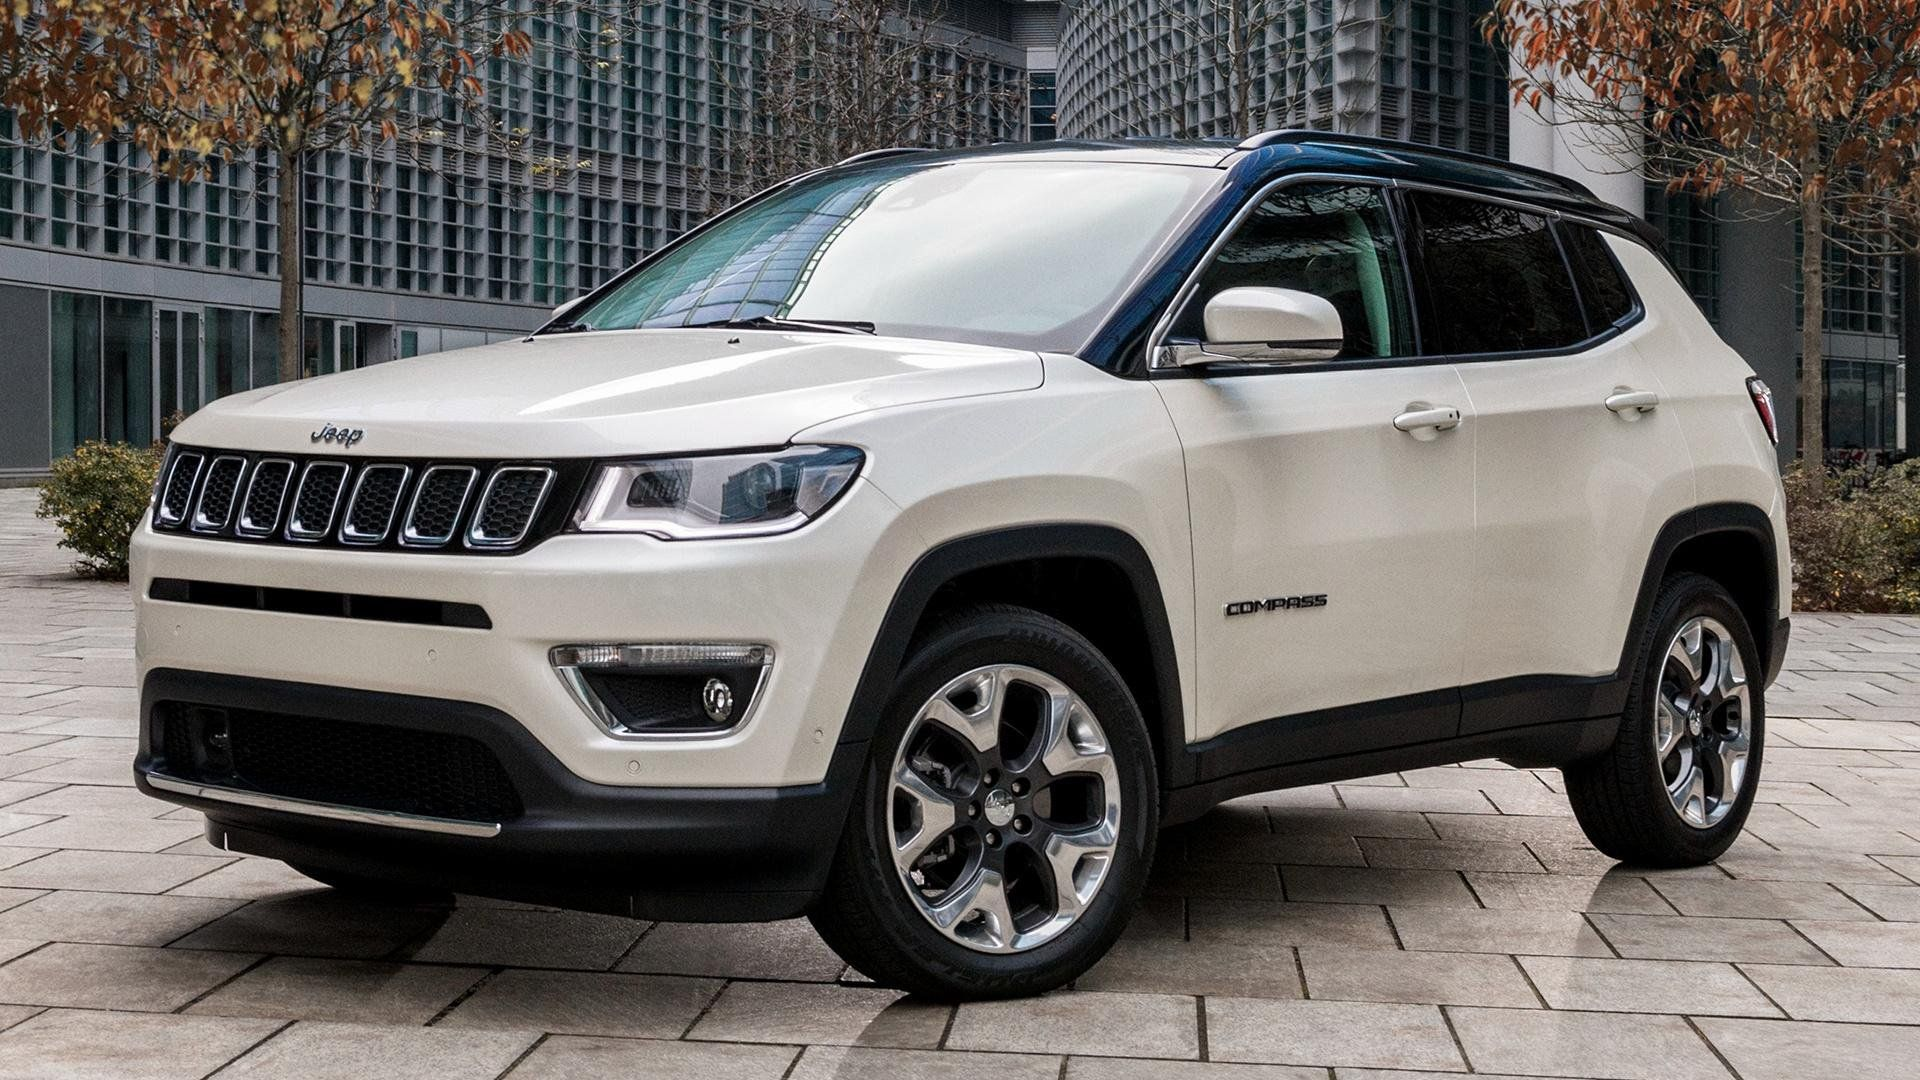 Jeep Compass Wallpapers Jeep Compass Jeep Suv Jeep Cars